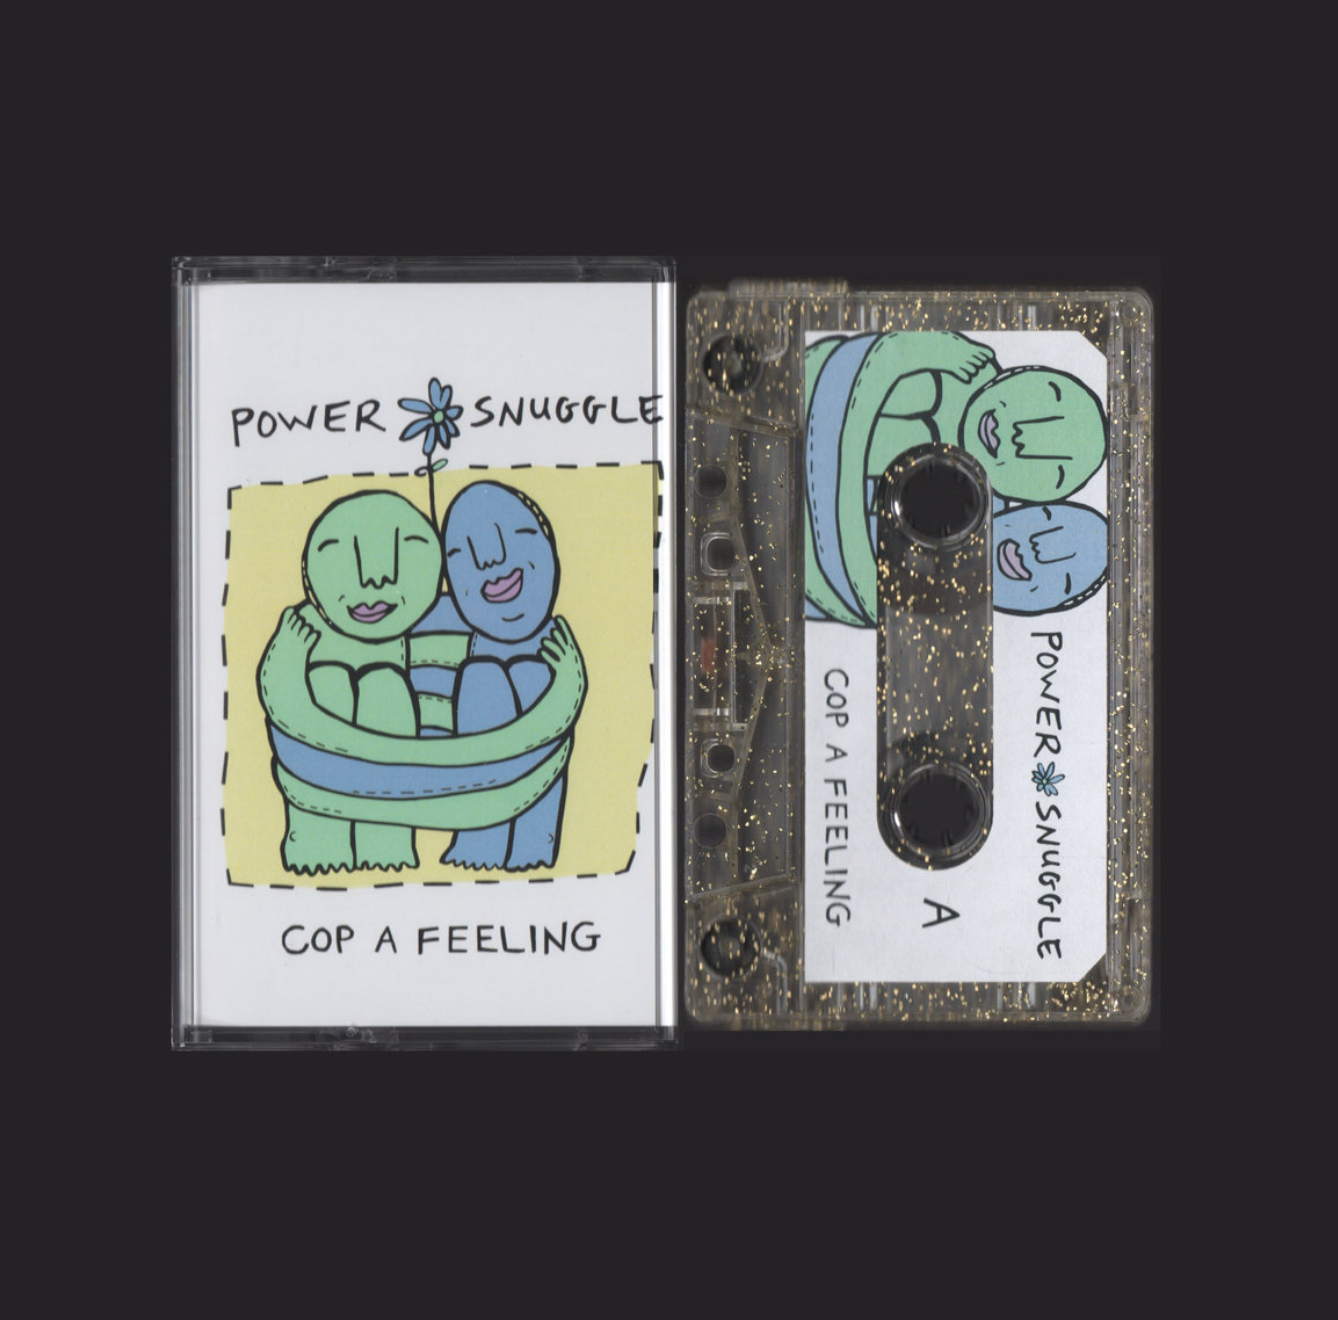 Power Snuggle - Cop A Feeling (Z Tapes)